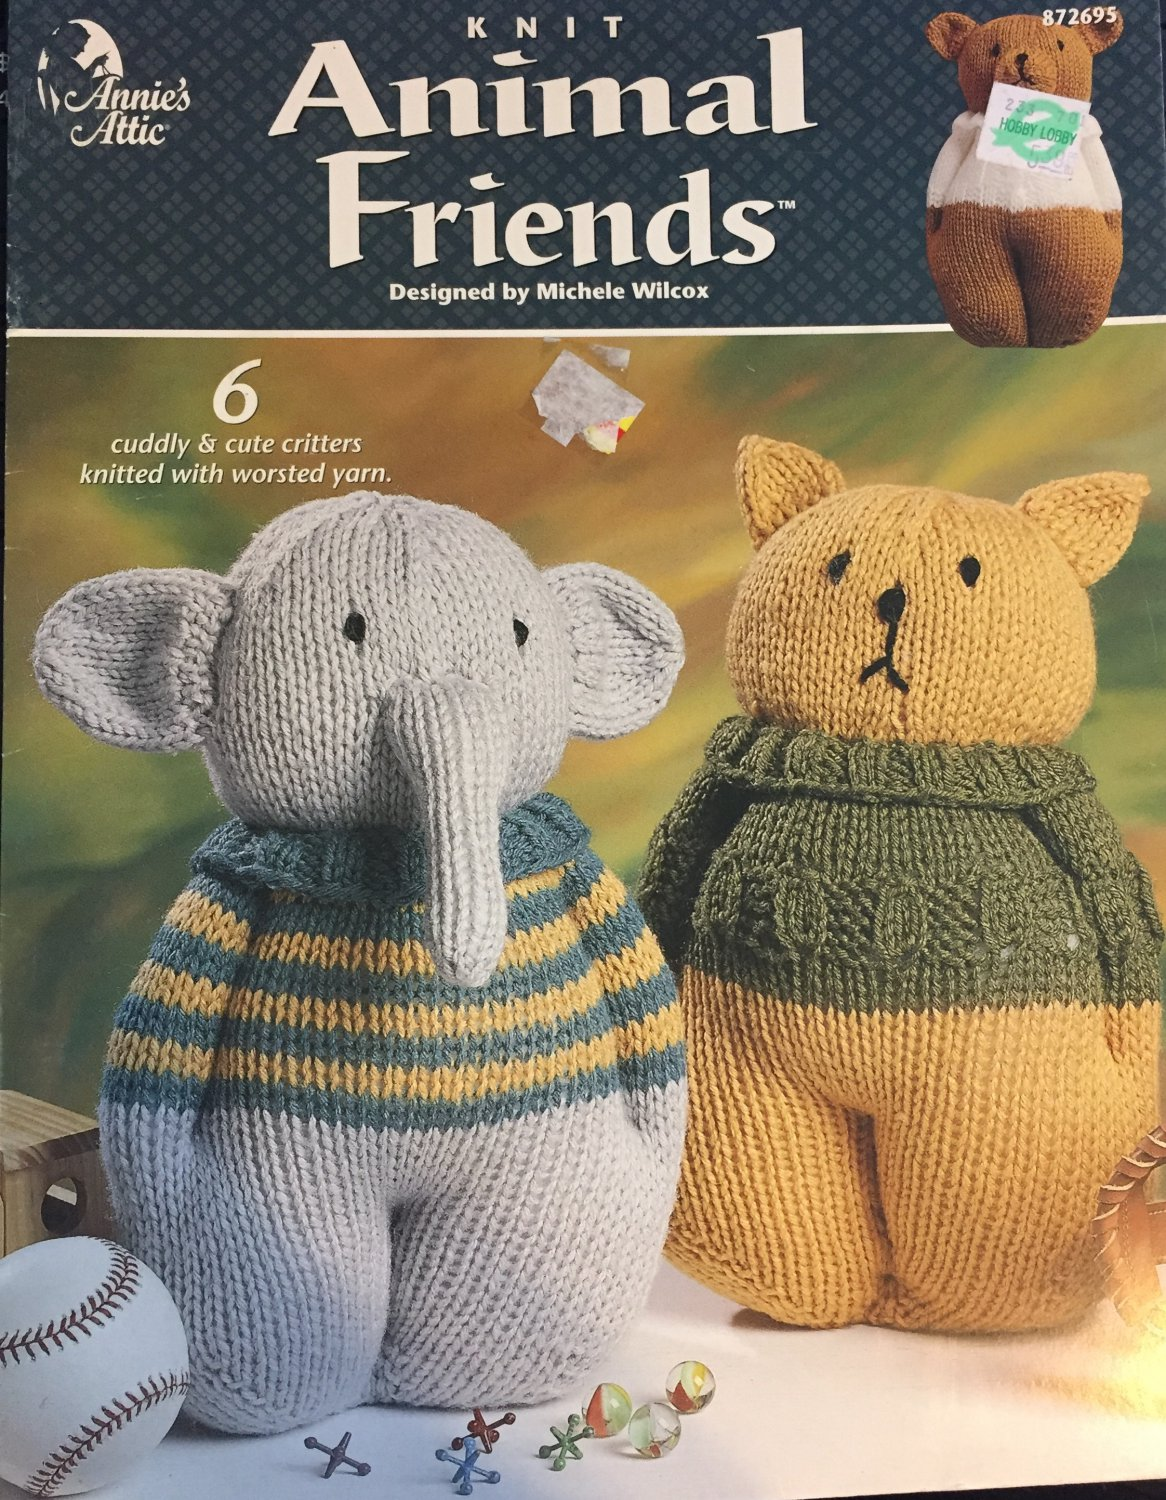 Annie's Attic Knit Animal Friends 6 Designs  872695 knitting pattern